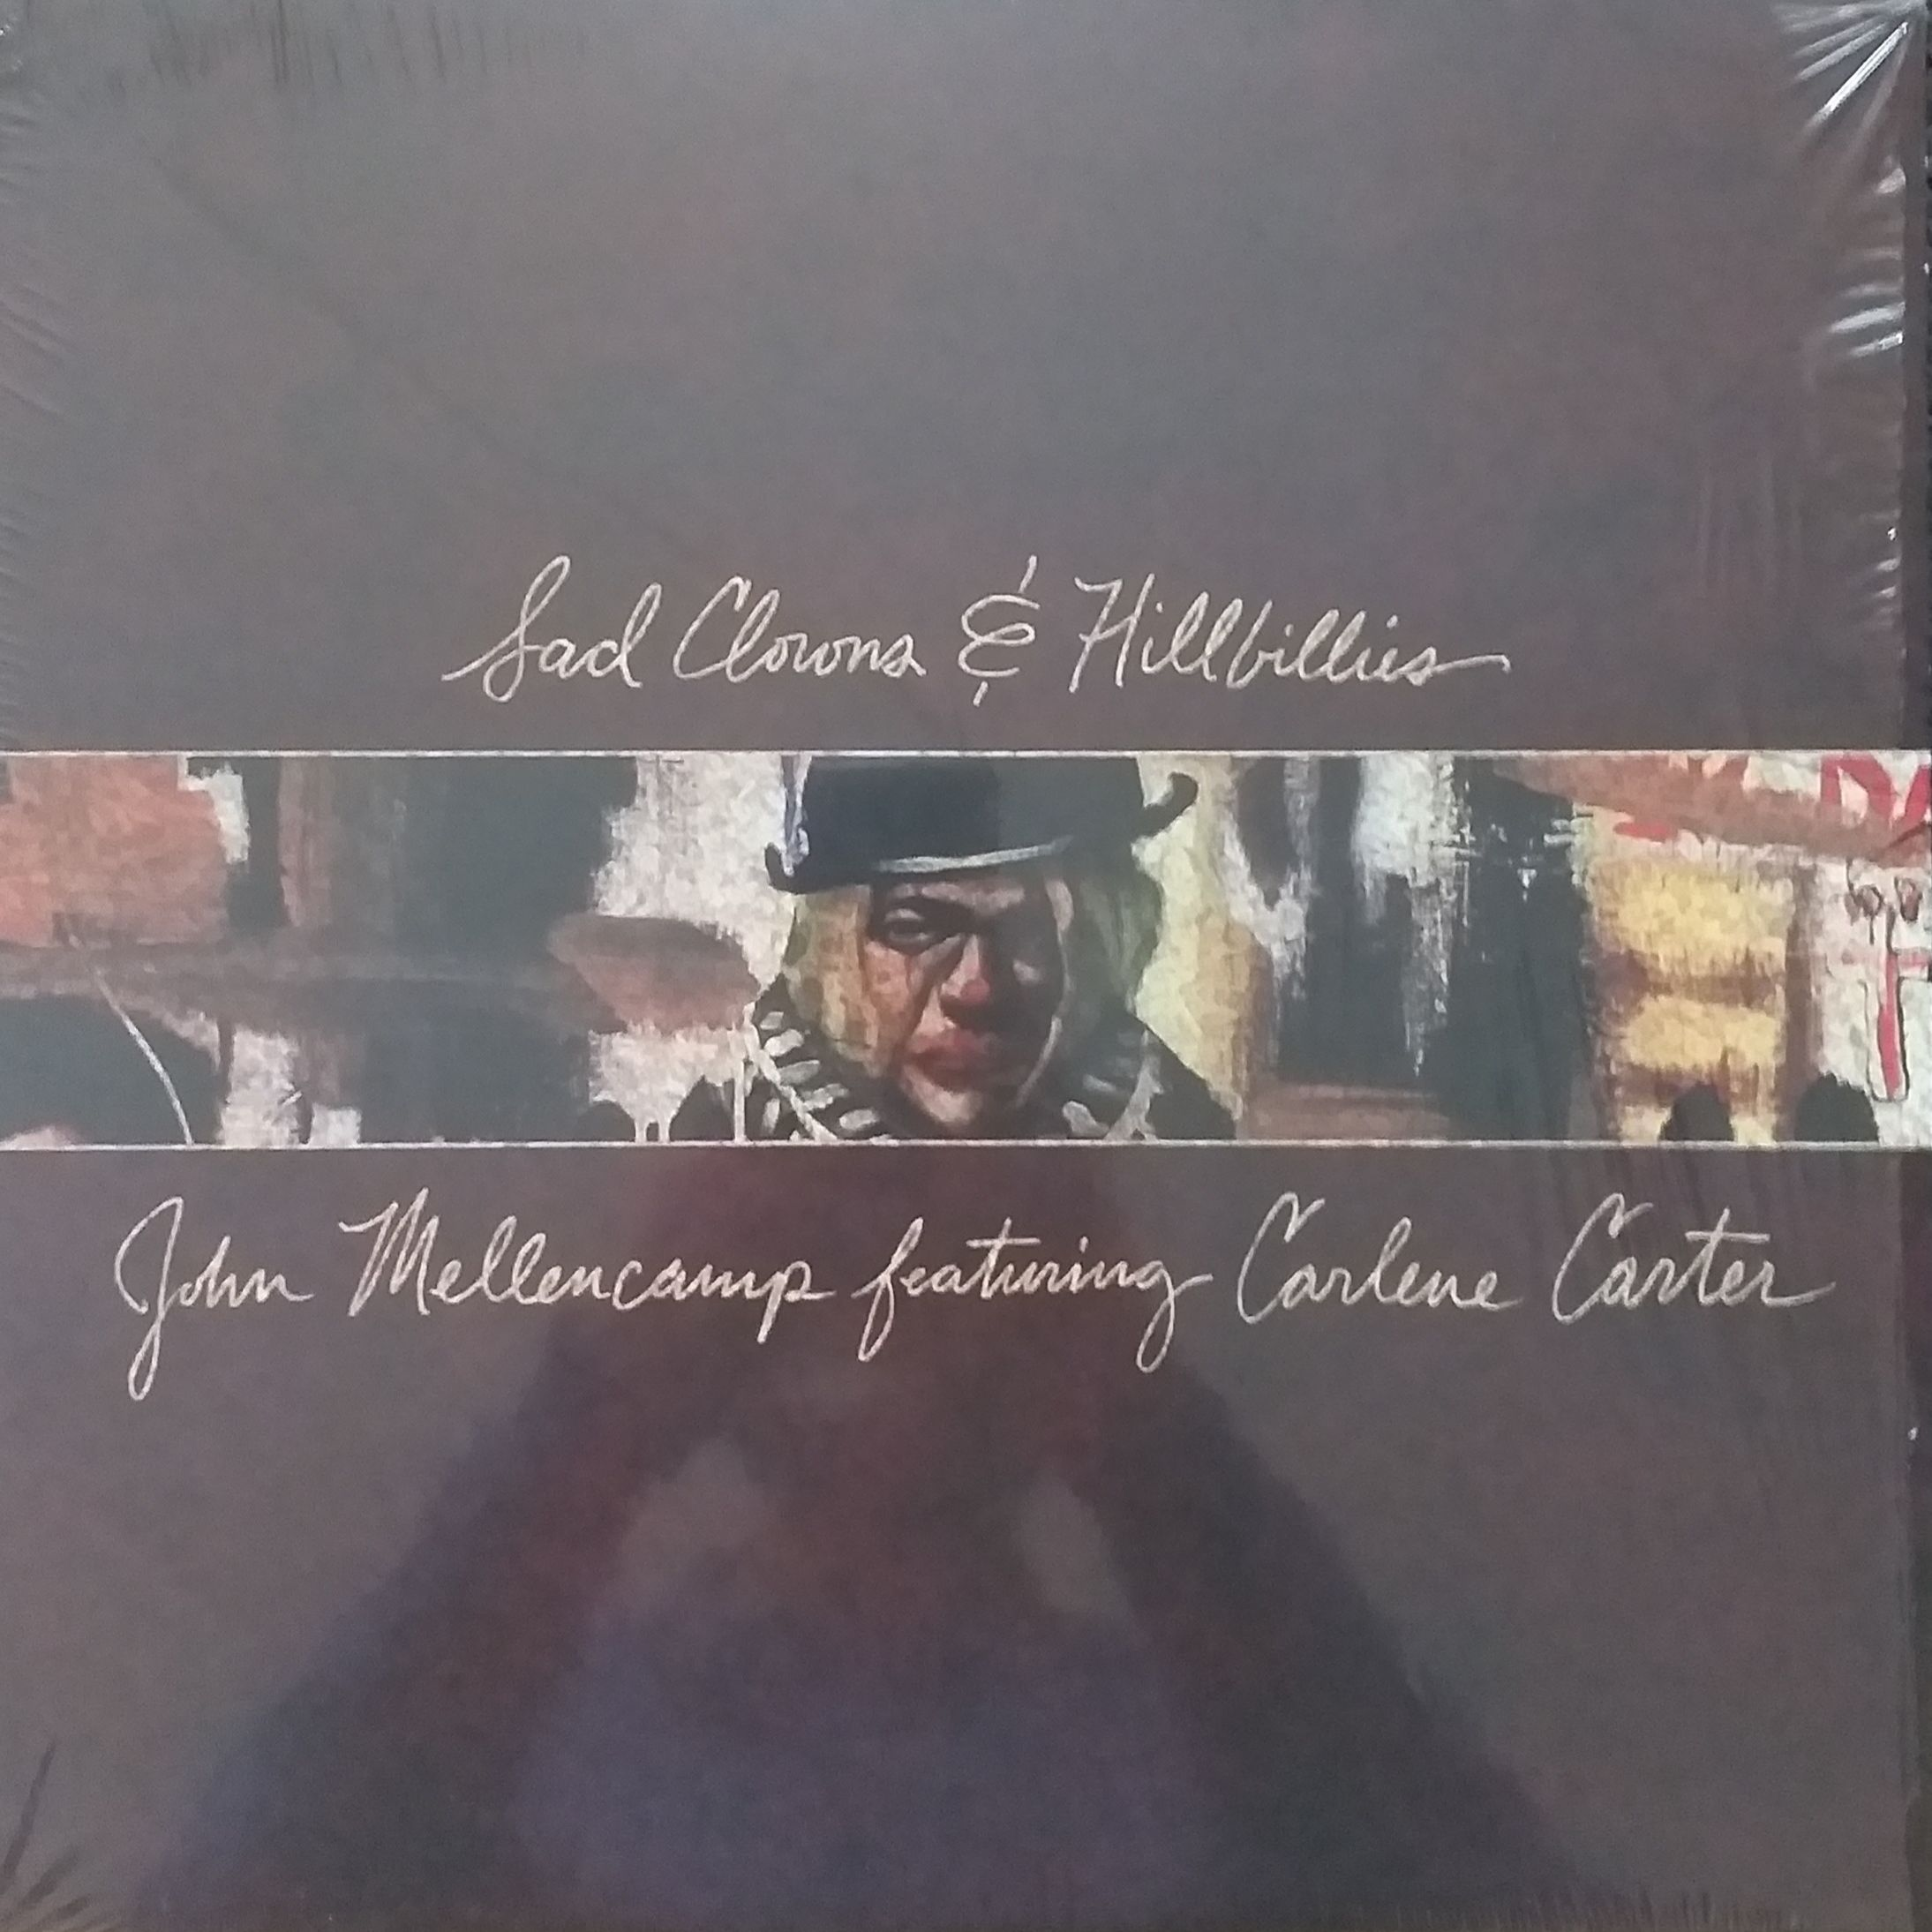 John Mellencamp Sad clowns & hillbillies LP undefined